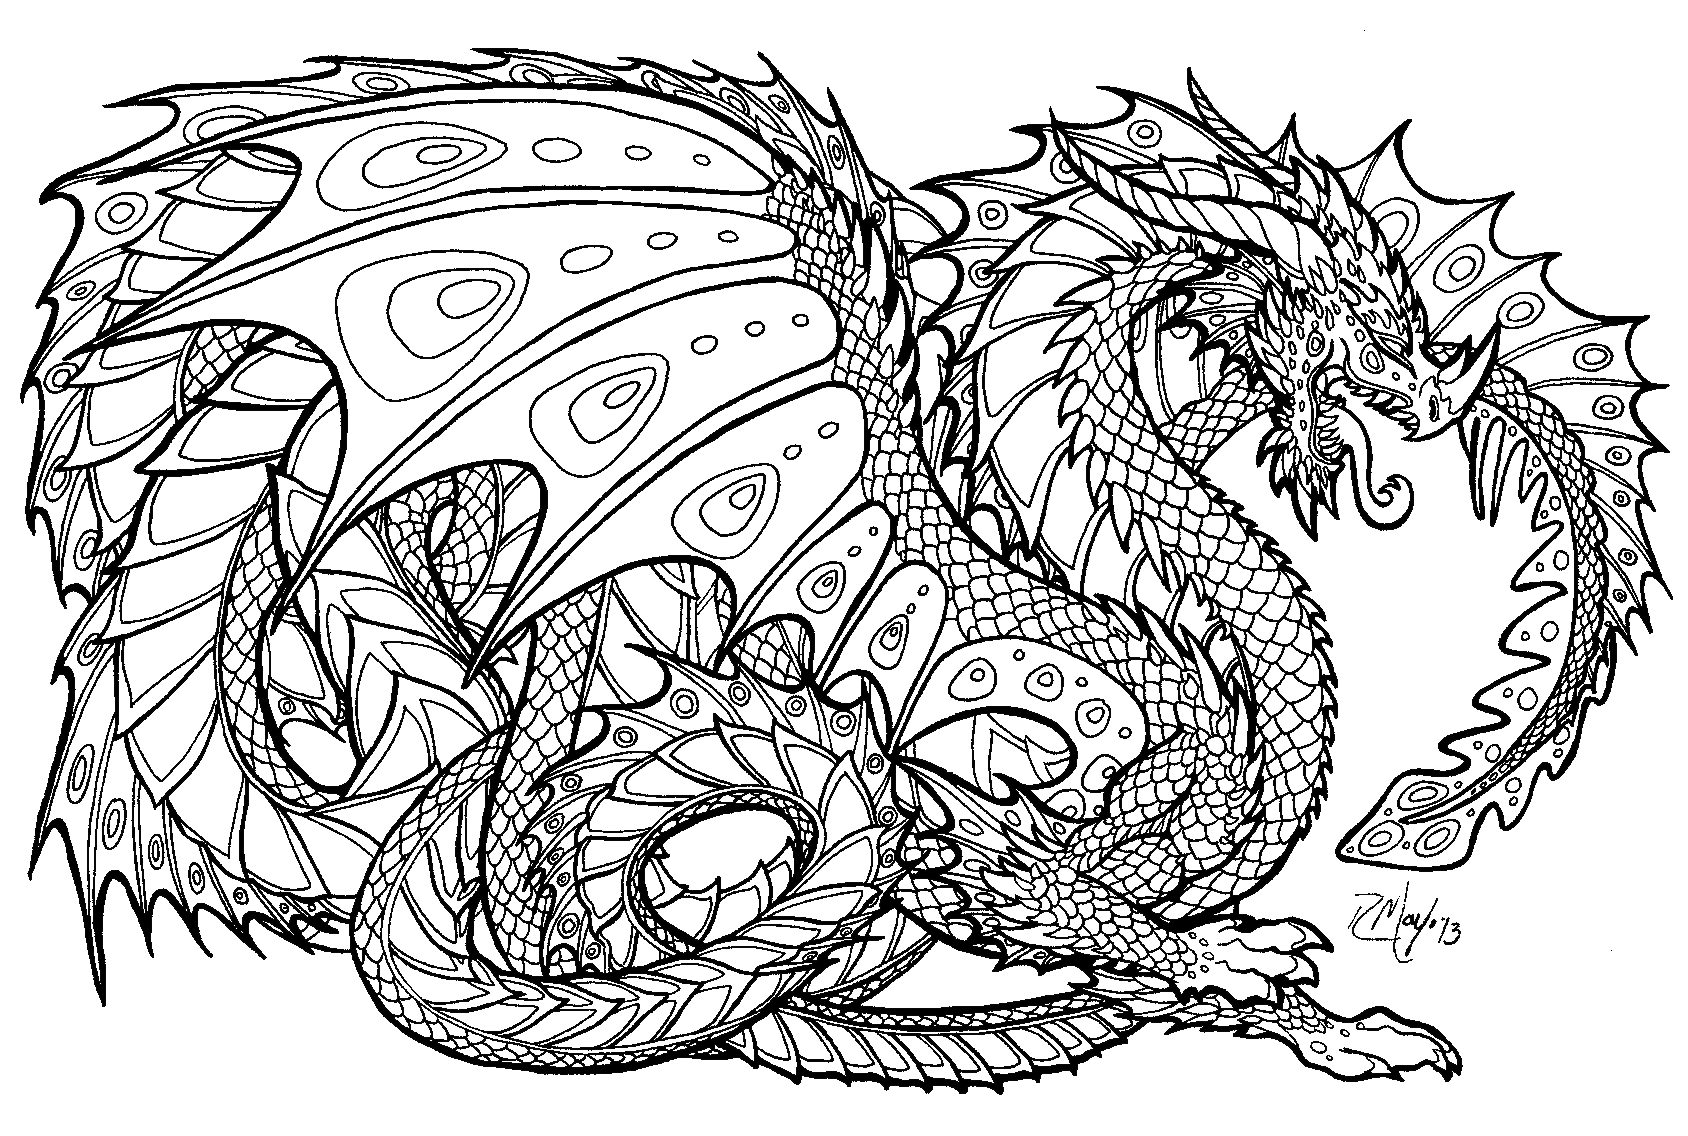 free coloring pages of dragons complicated coloring pages to print download free dragons pages coloring free of